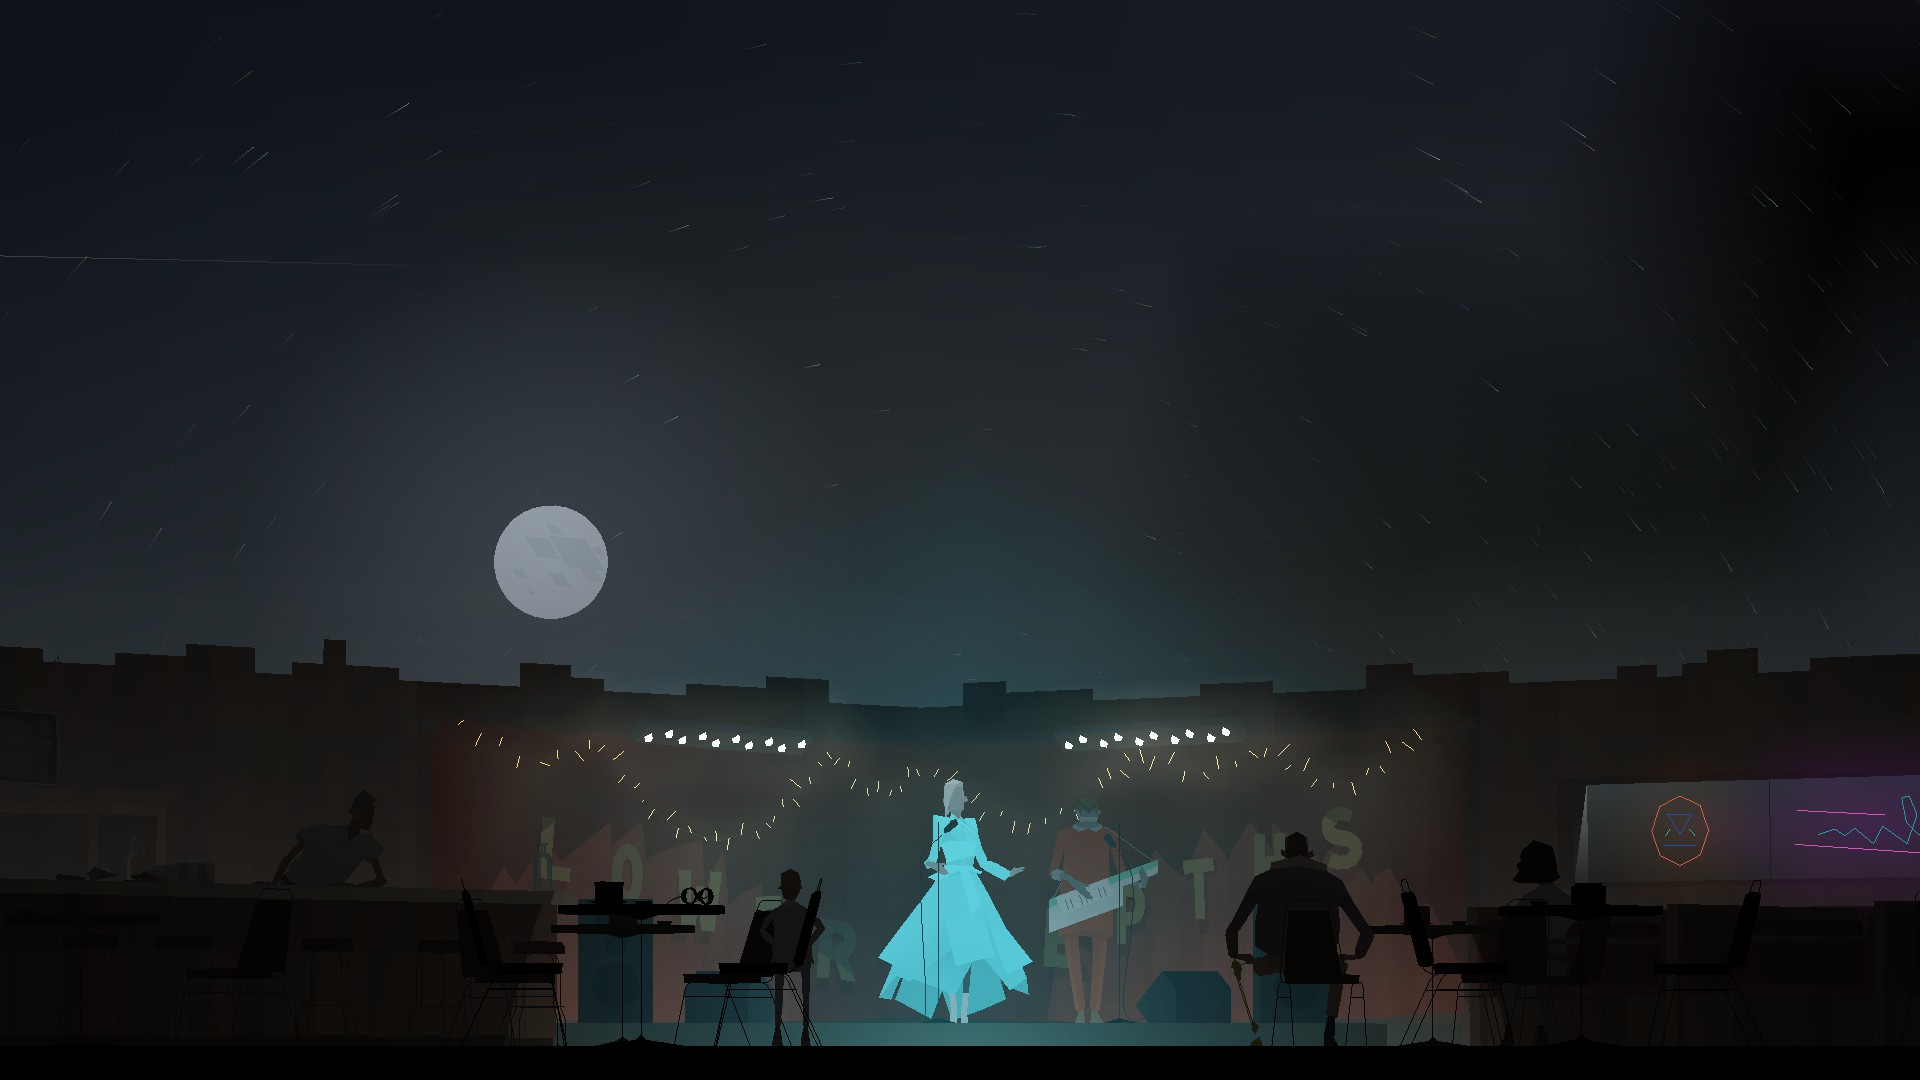 Junebug from Kentucky Route Zero sings on a roofless stage wearing a light blue dress in front of three people.